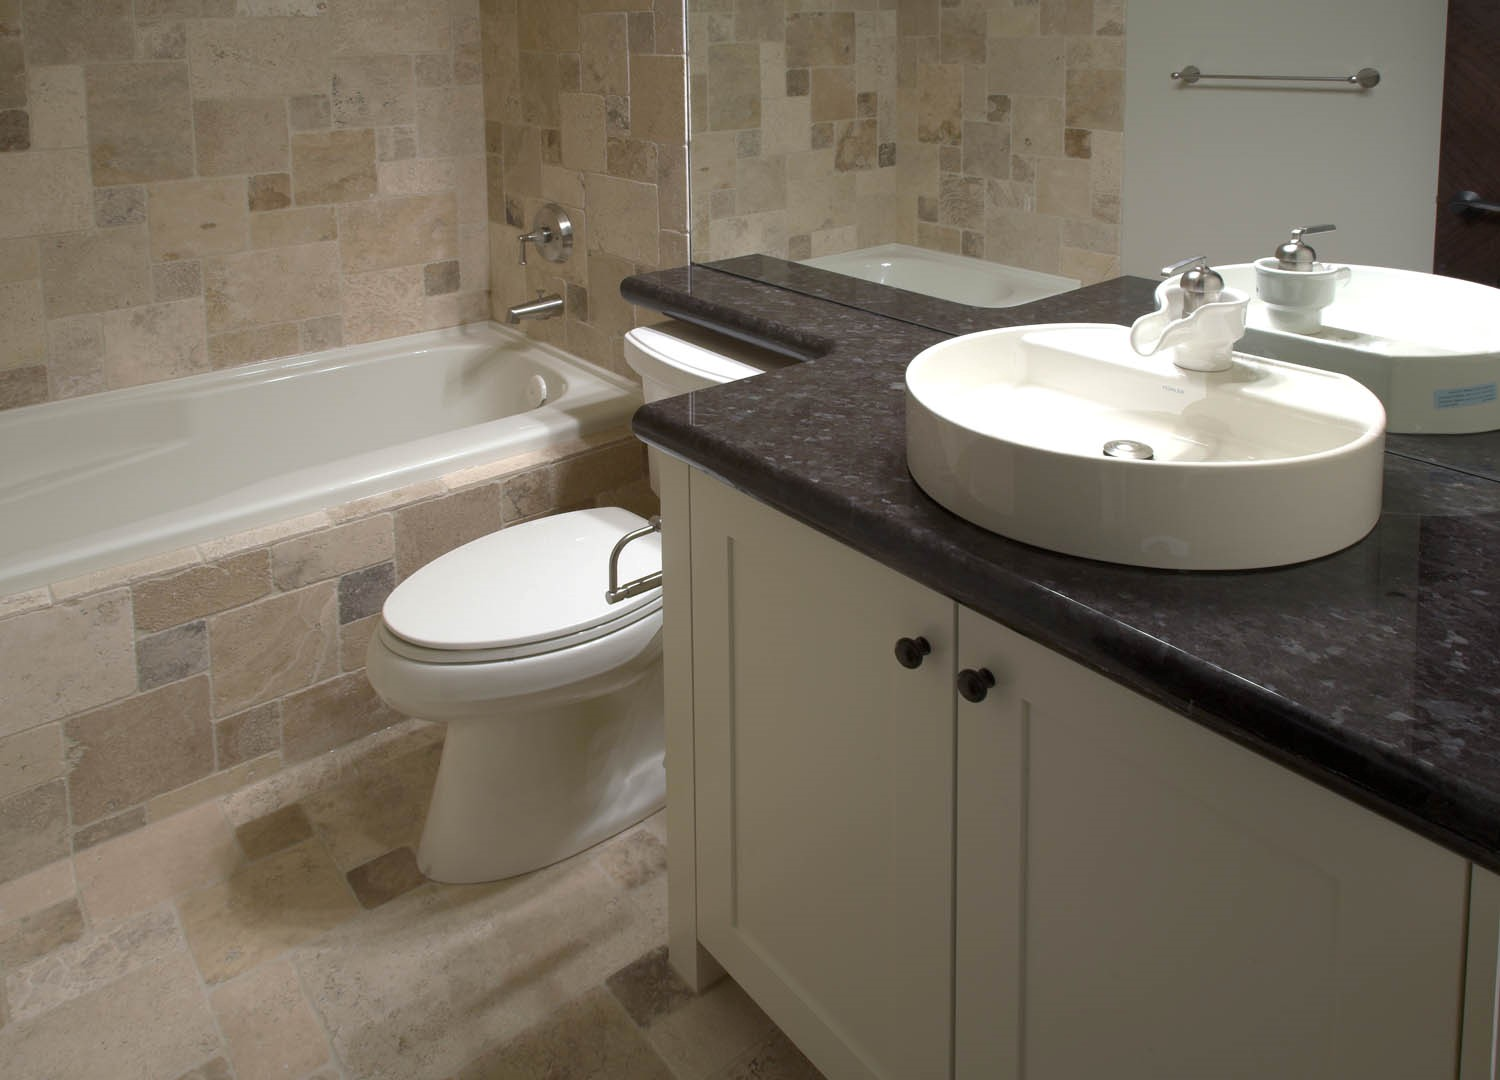 Silkstone Granite Bathroom Granite Countertops Tiles Colors